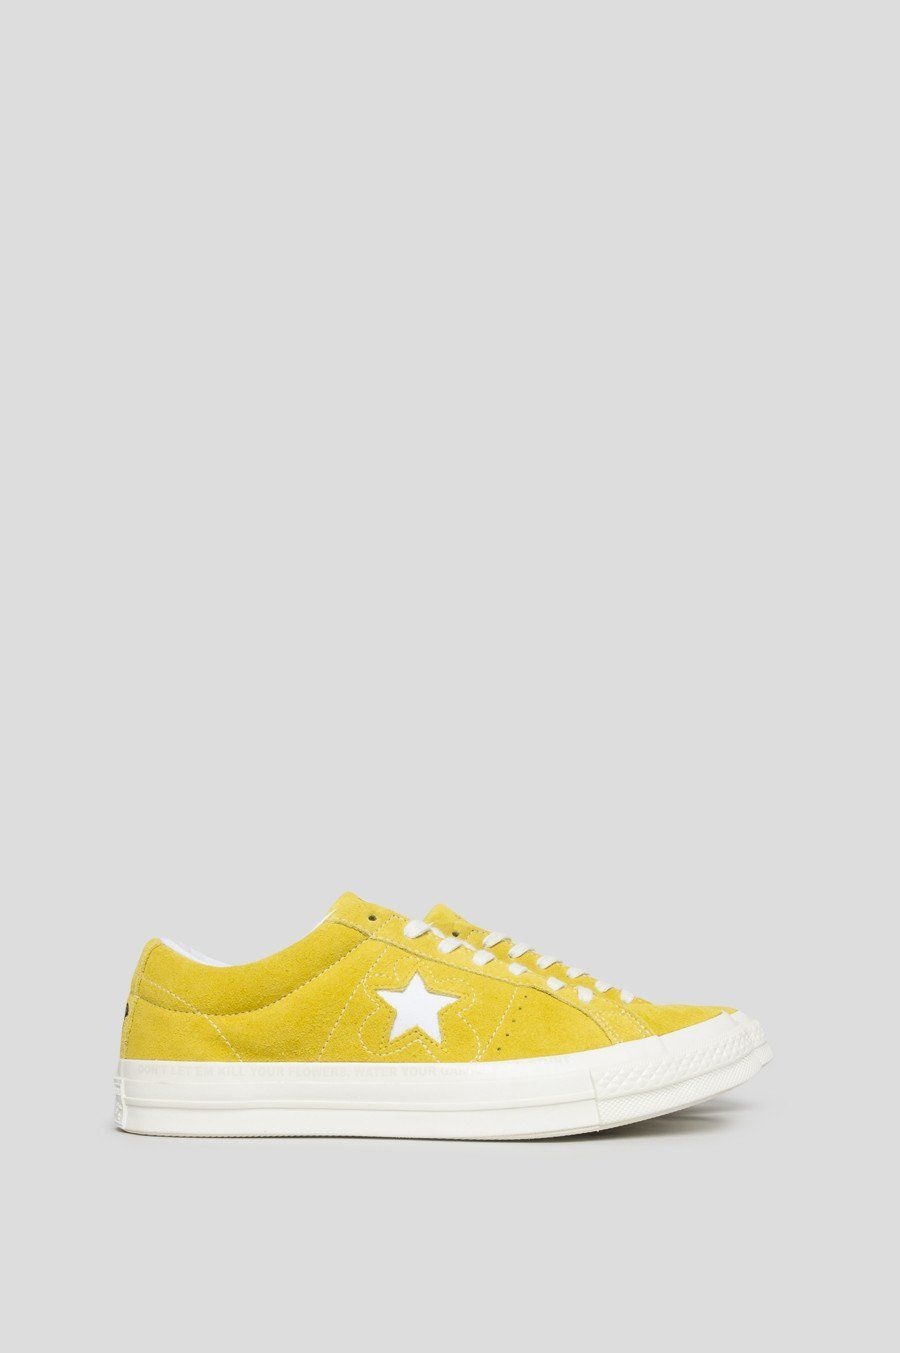 Converse One Star Golf Le Fleur Suede Yellow Products Golf Golf